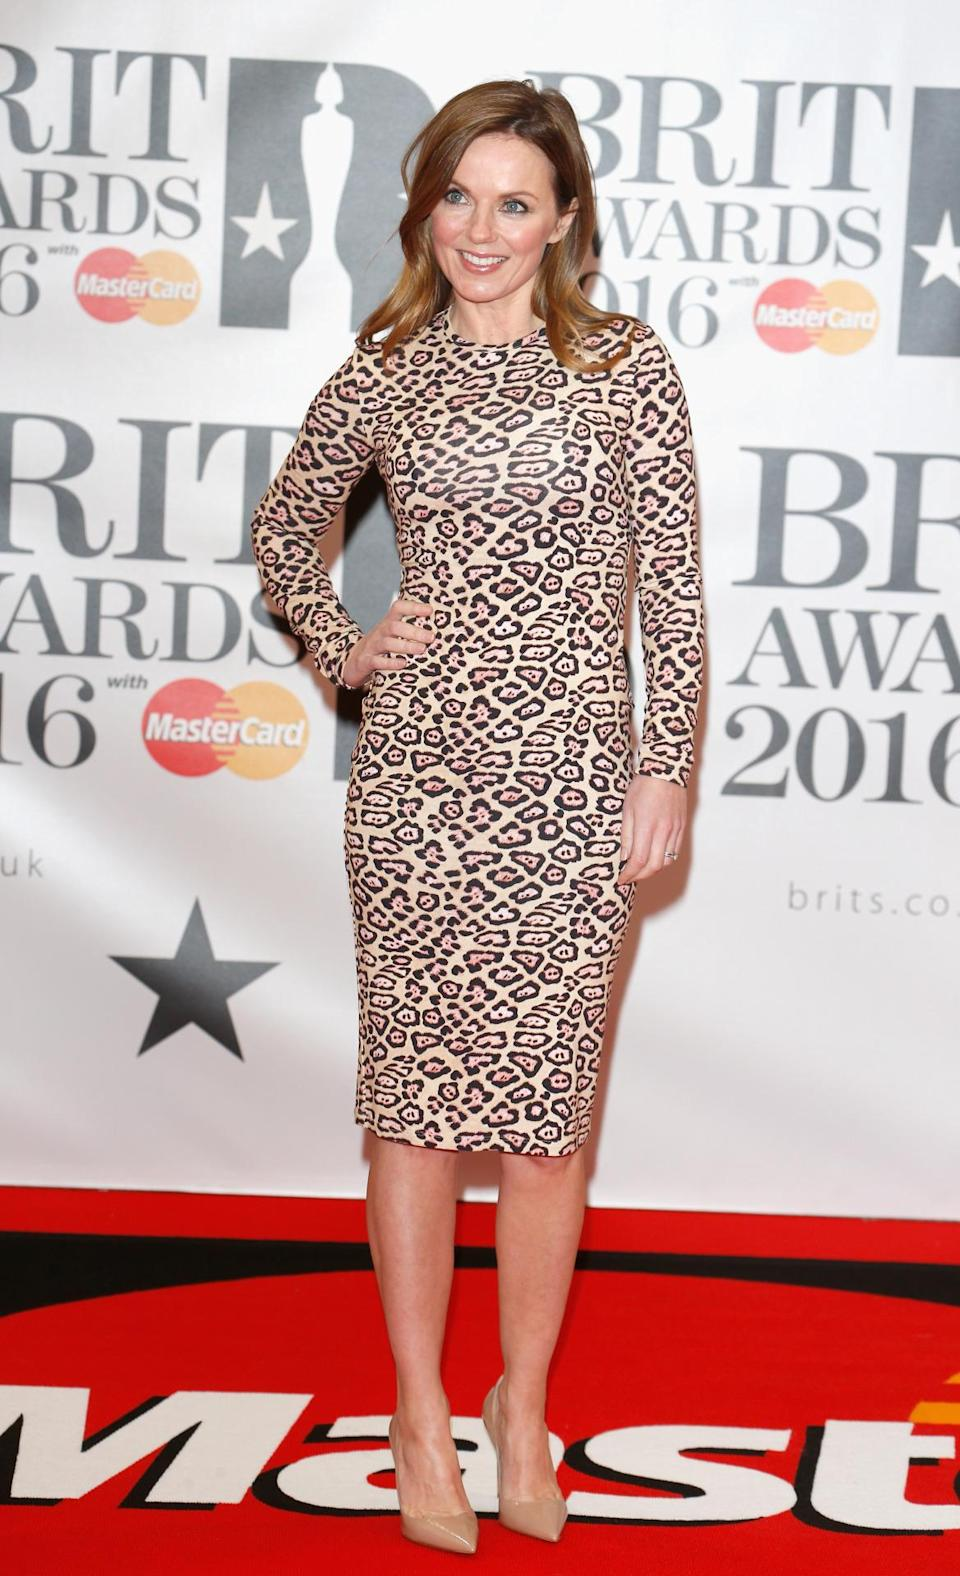 <p>The former Spice Girl opted for a figure-hugging and eye-catching leopard print dress. <i>[Photo: Getty]</i></p>